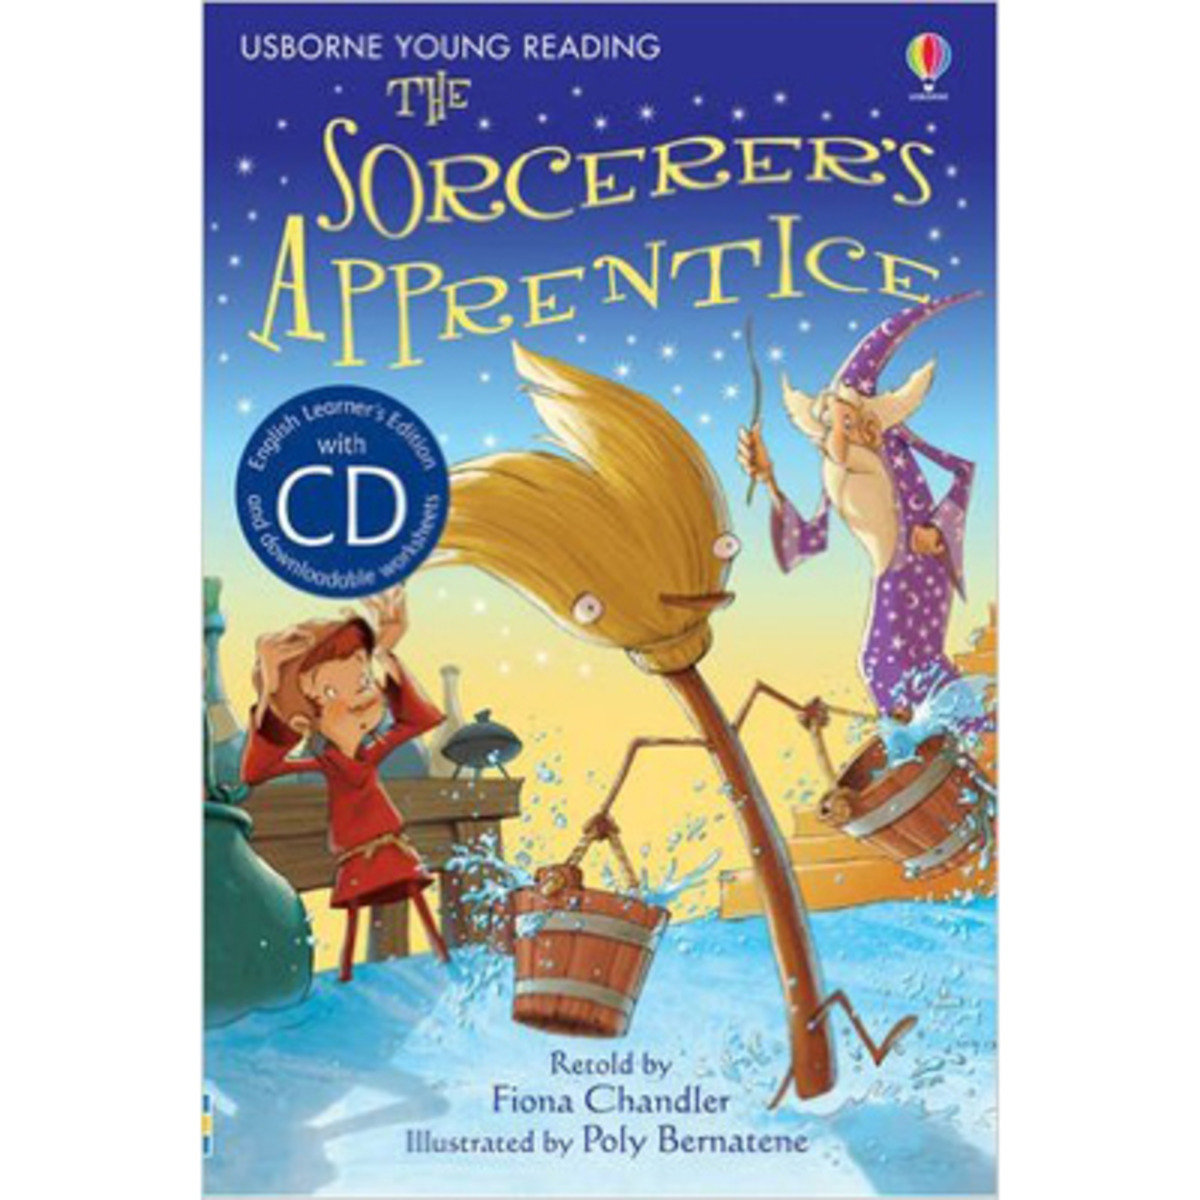 The Sorcerer's Apprentice-Young Reading 1 with CD